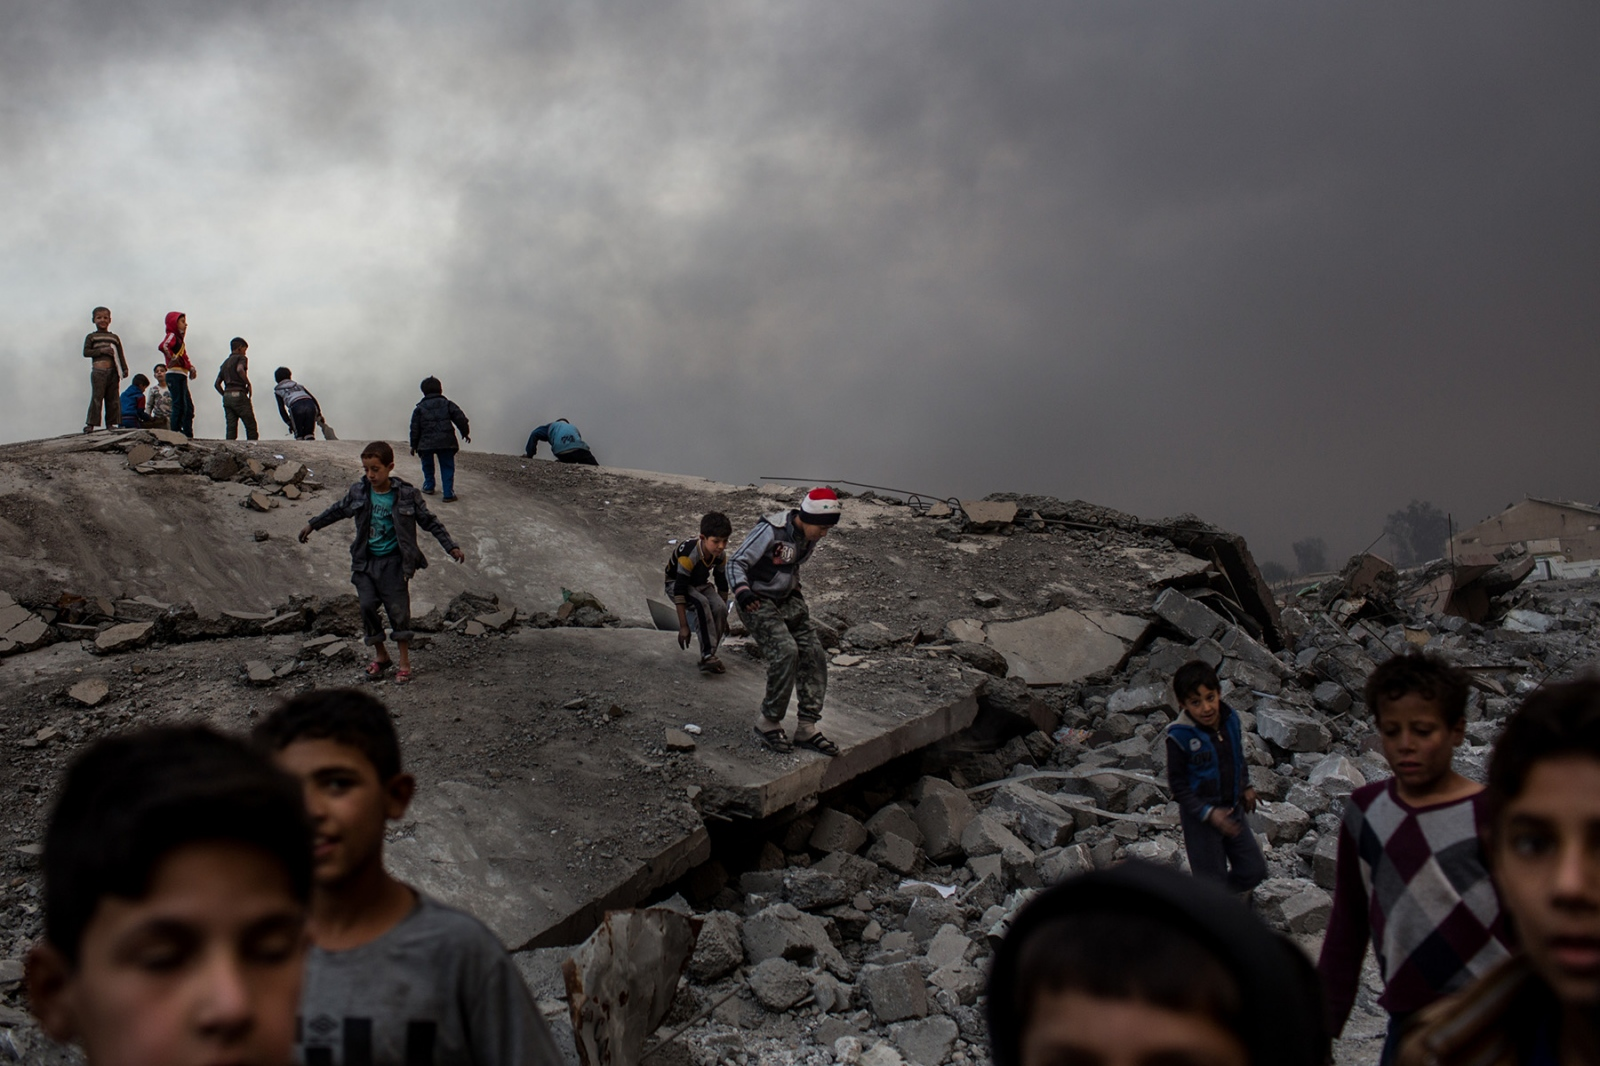 Children play on the rubble of what was once a stadium in Qayyarah, Iraq, on Wednesday, November 9, 2016, as a constant cloud of smoke hangs over the sky. The stadium, which was used by ISIS to hide their weapons stockpiles was destroyed by coalition airstrikes over the summer and oil wells were set on fire as ISIS fighters retreated.